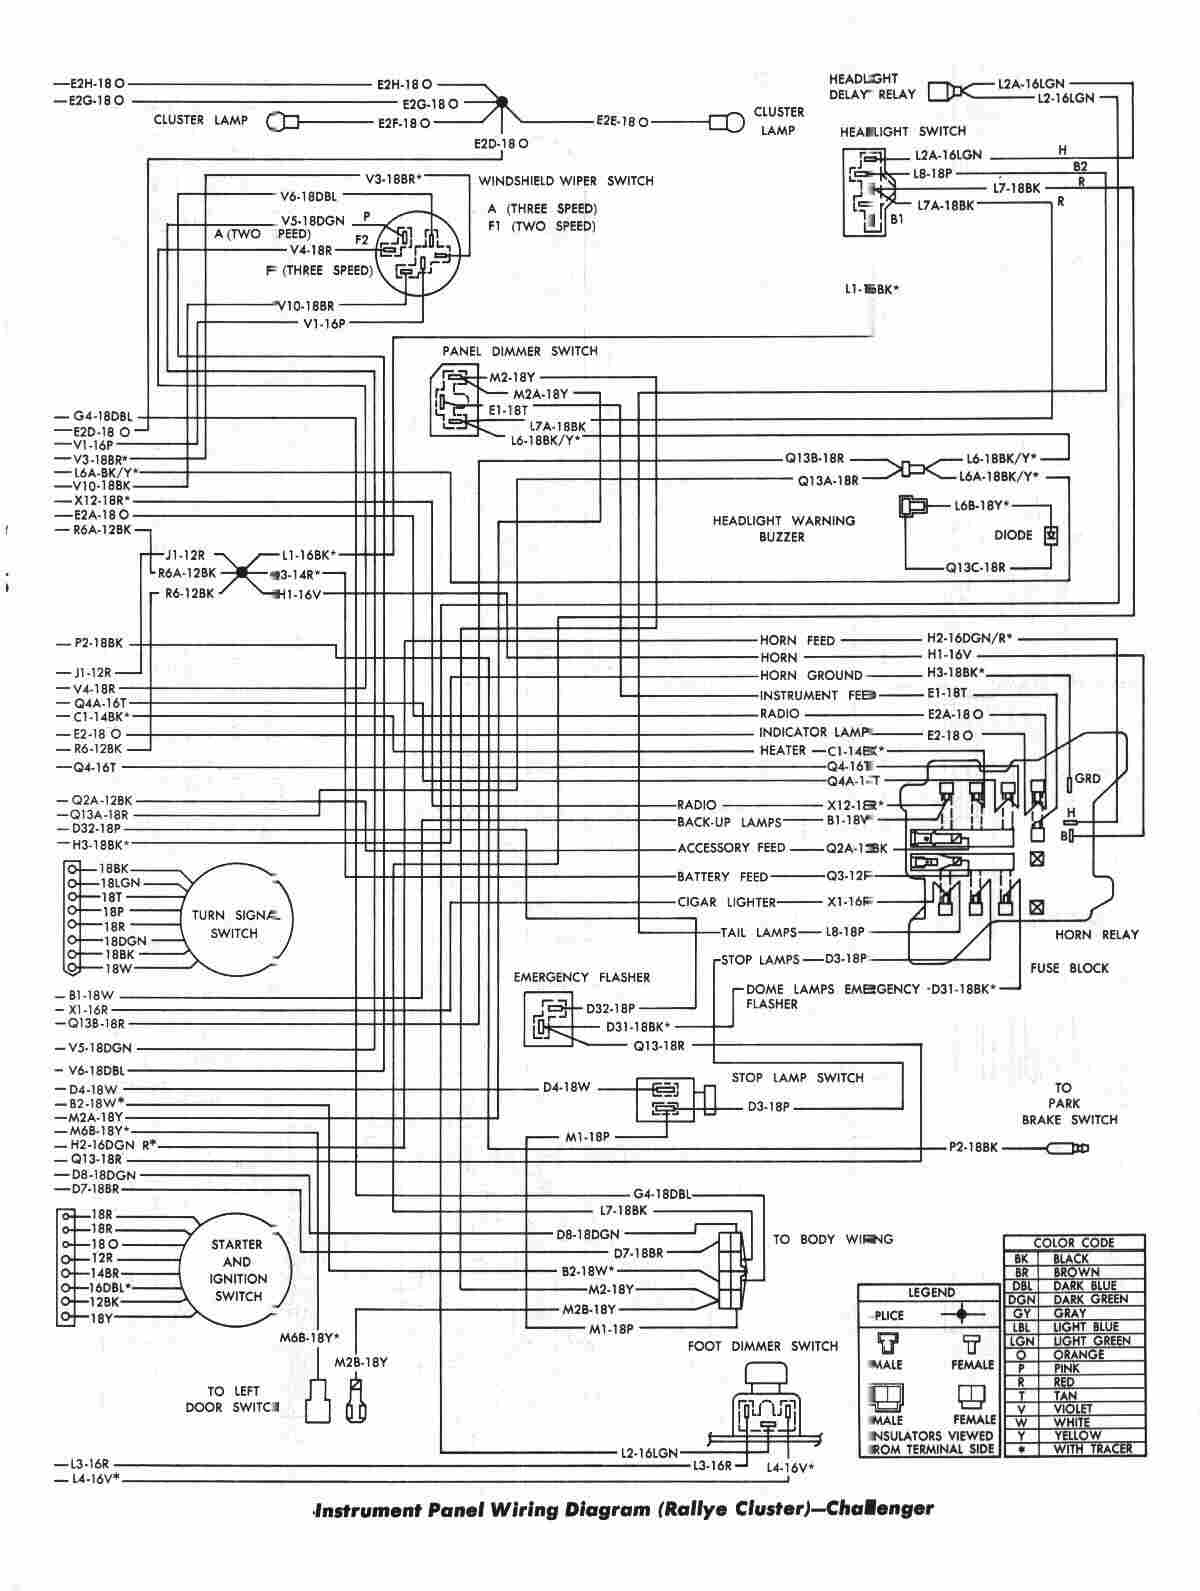 small resolution of dodge challenger wiring harness diagram wiring diagram dat 1974 dodge challenger wiring diagram dodge challenger wiring